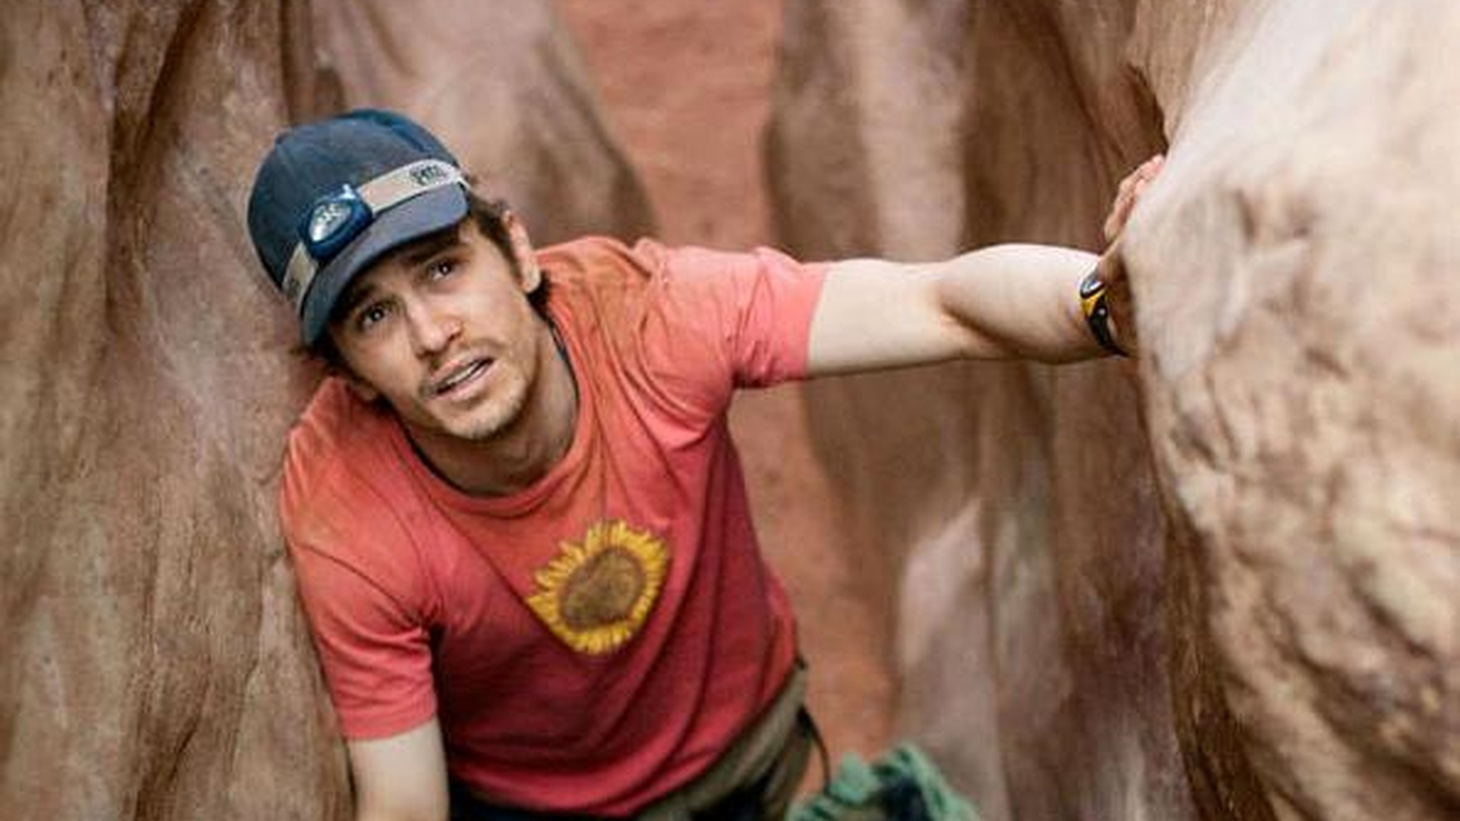 The pleasure principle prevails in 127 Hours, even though Danny Boyle's new film depicts horrific pain. As yo probably know by now, the title refers to the time it took a real-life mountain climber named Aron Ralston to extricate himself from a slot canyon he'd tumbled into during a solitary hike in Utah seven years ago...